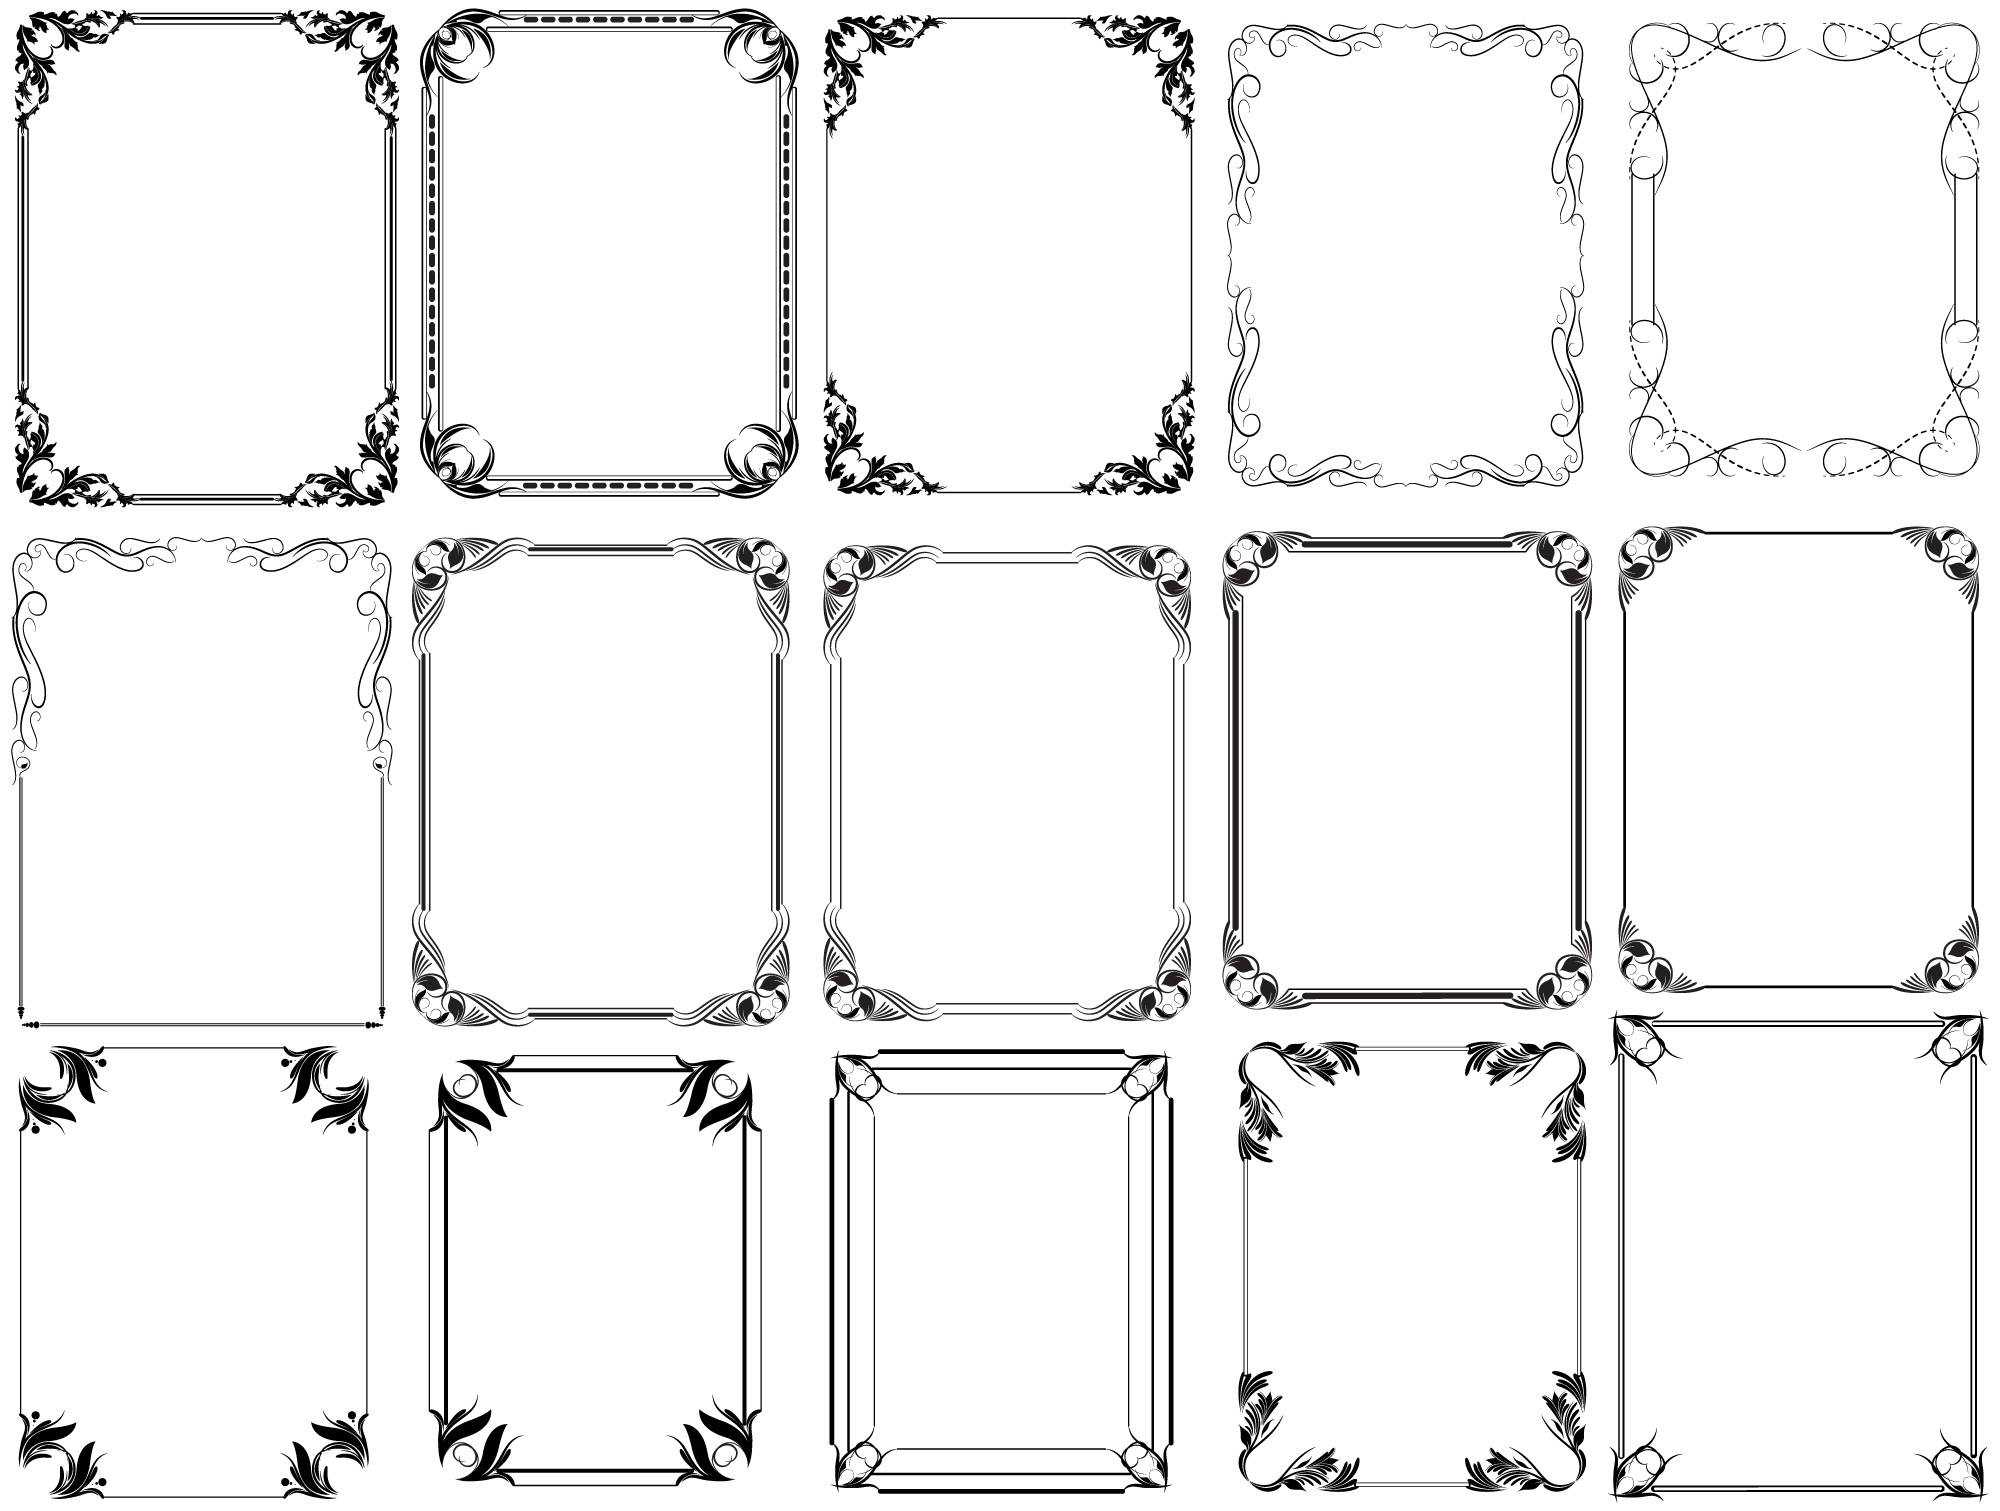 10 Free Photoshop Frames PNG Images